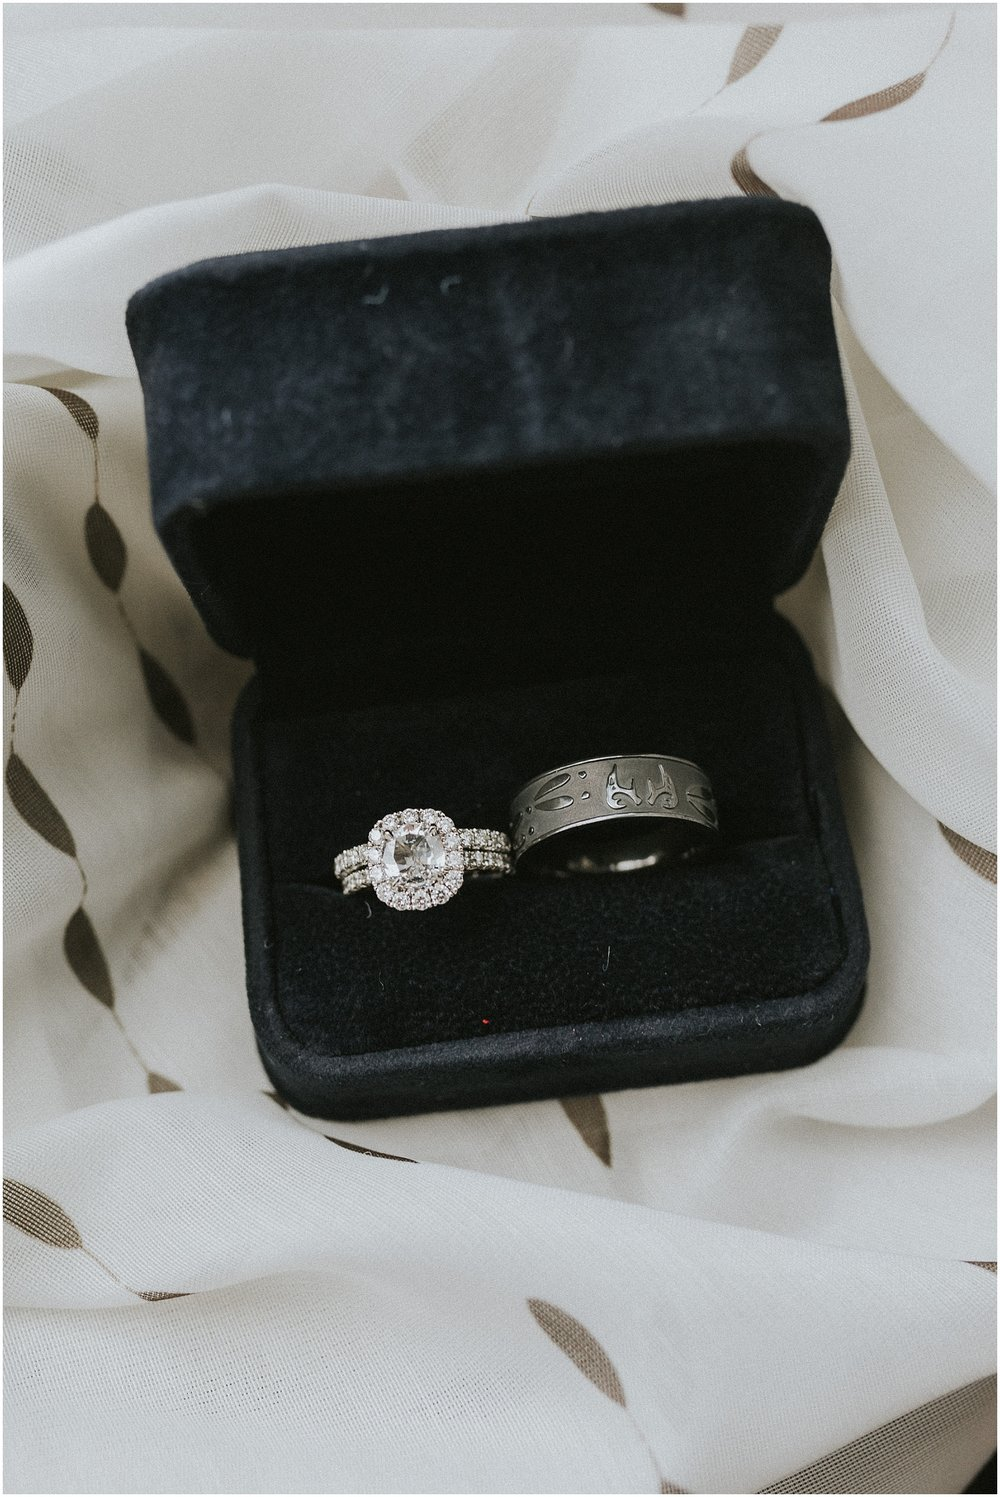 Large and sparkly diamond engagement and wedding rings